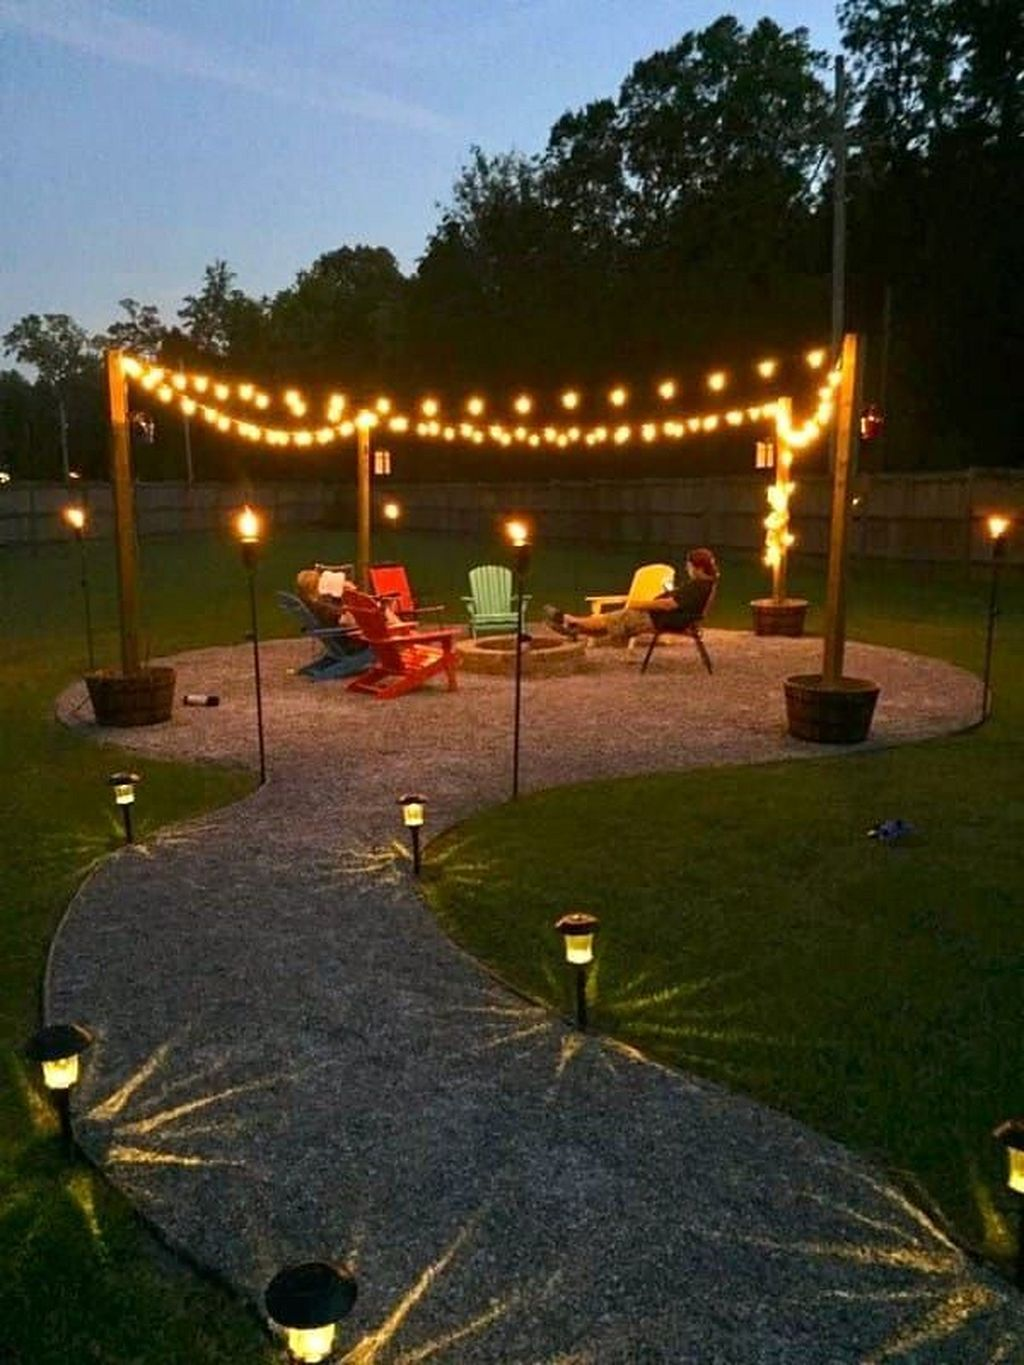 20 diy backyard lighting projects ideas pinterest project ideas stunning 20 diy backyard lighting projects ideas httpsarchitecturemagz20 diy backyard lighting projects ideas solutioingenieria